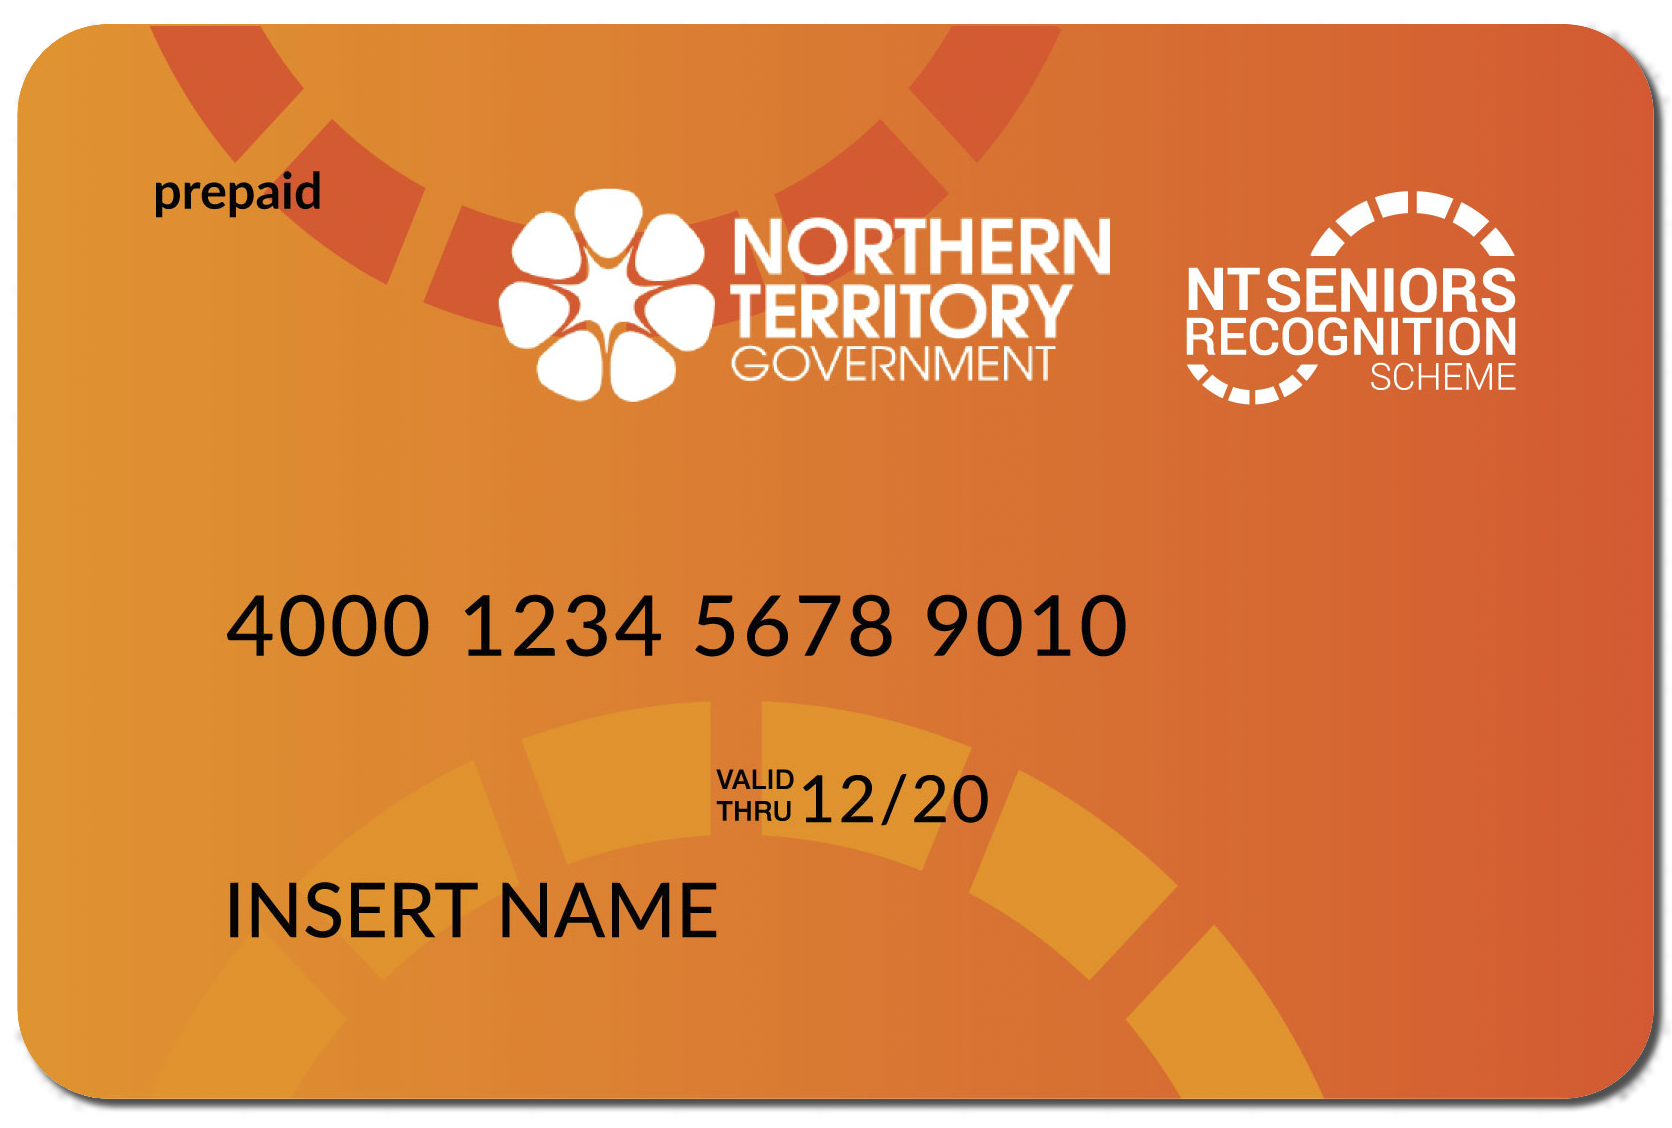 Prepaid Card for NT Seniors Recognition Scheme